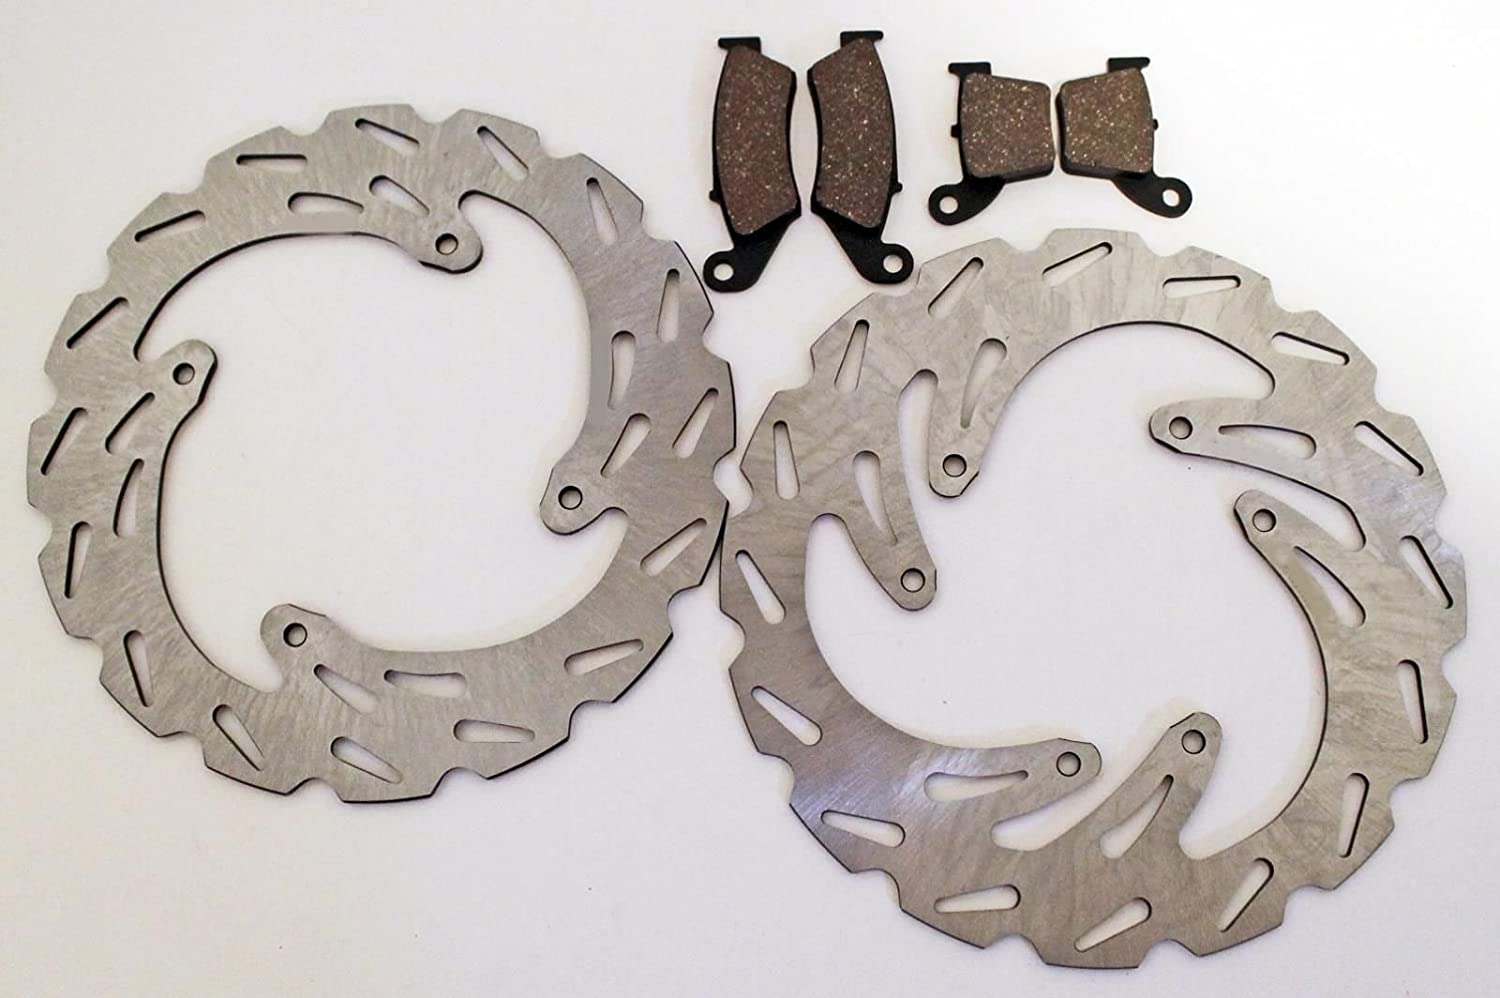 Fits Honda CR125R and CR250R Front and Rear Brake Pads and Sport Brake Rotors